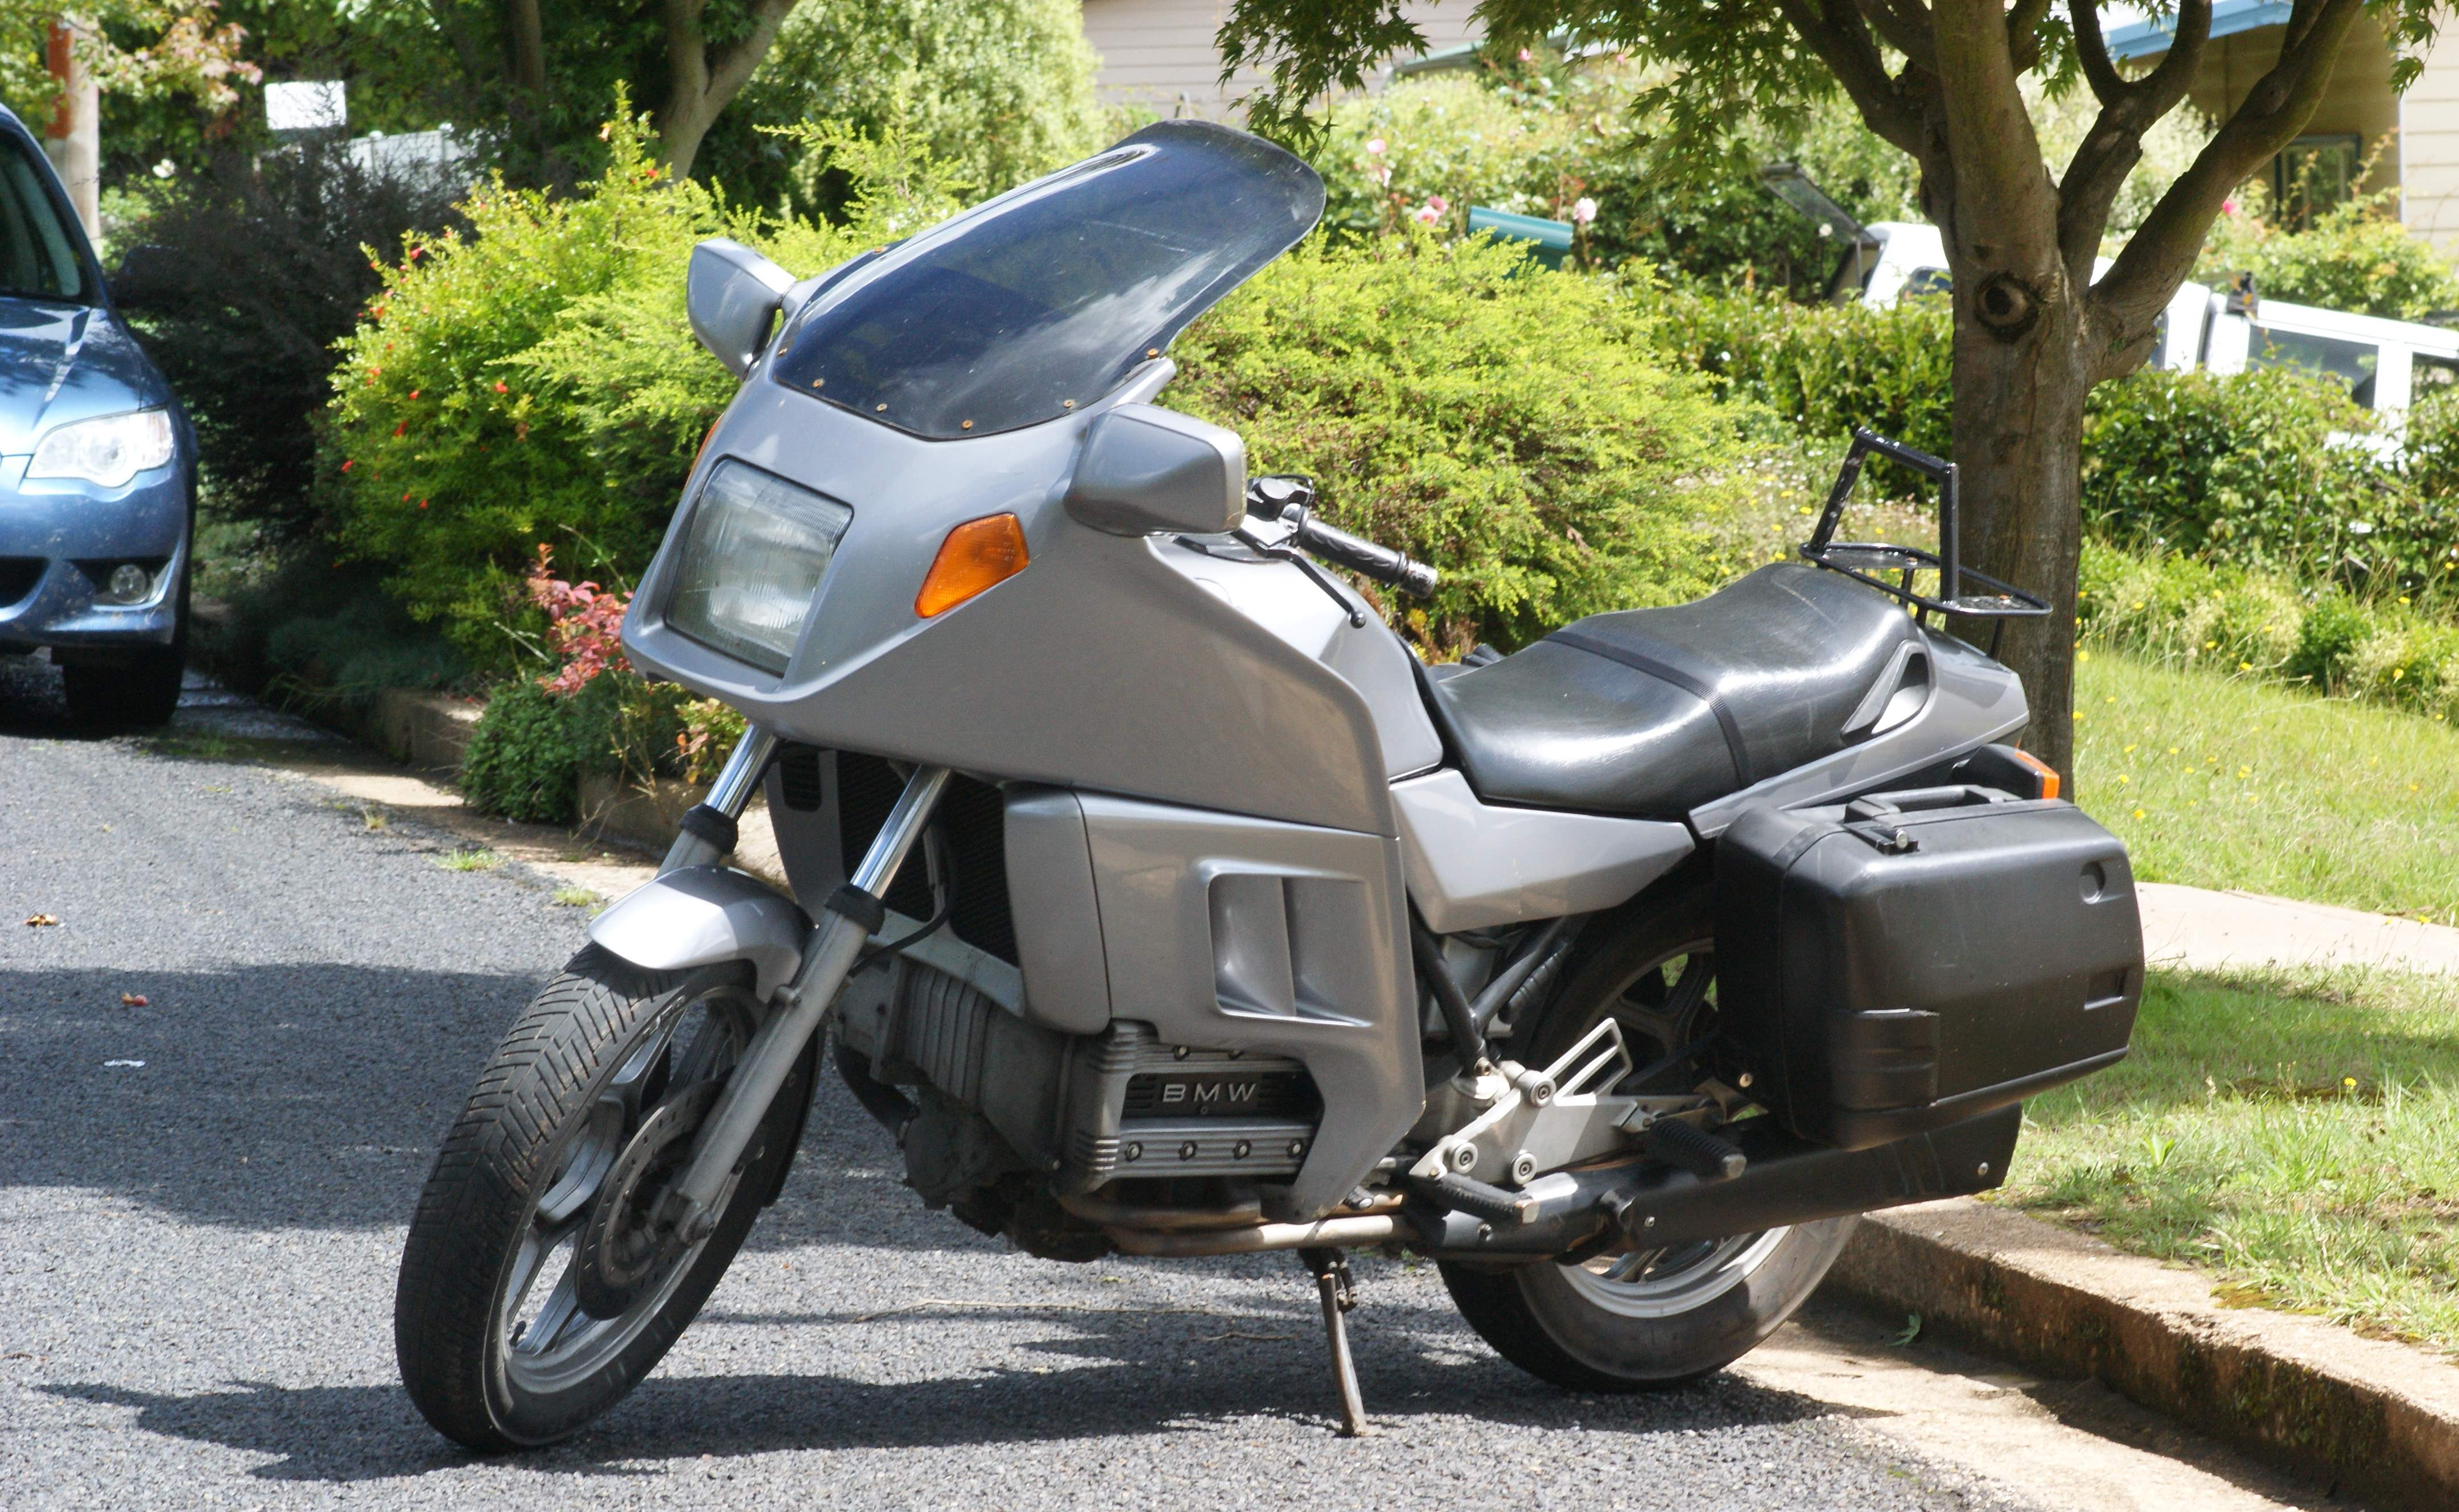 BMW K100RS images #4772